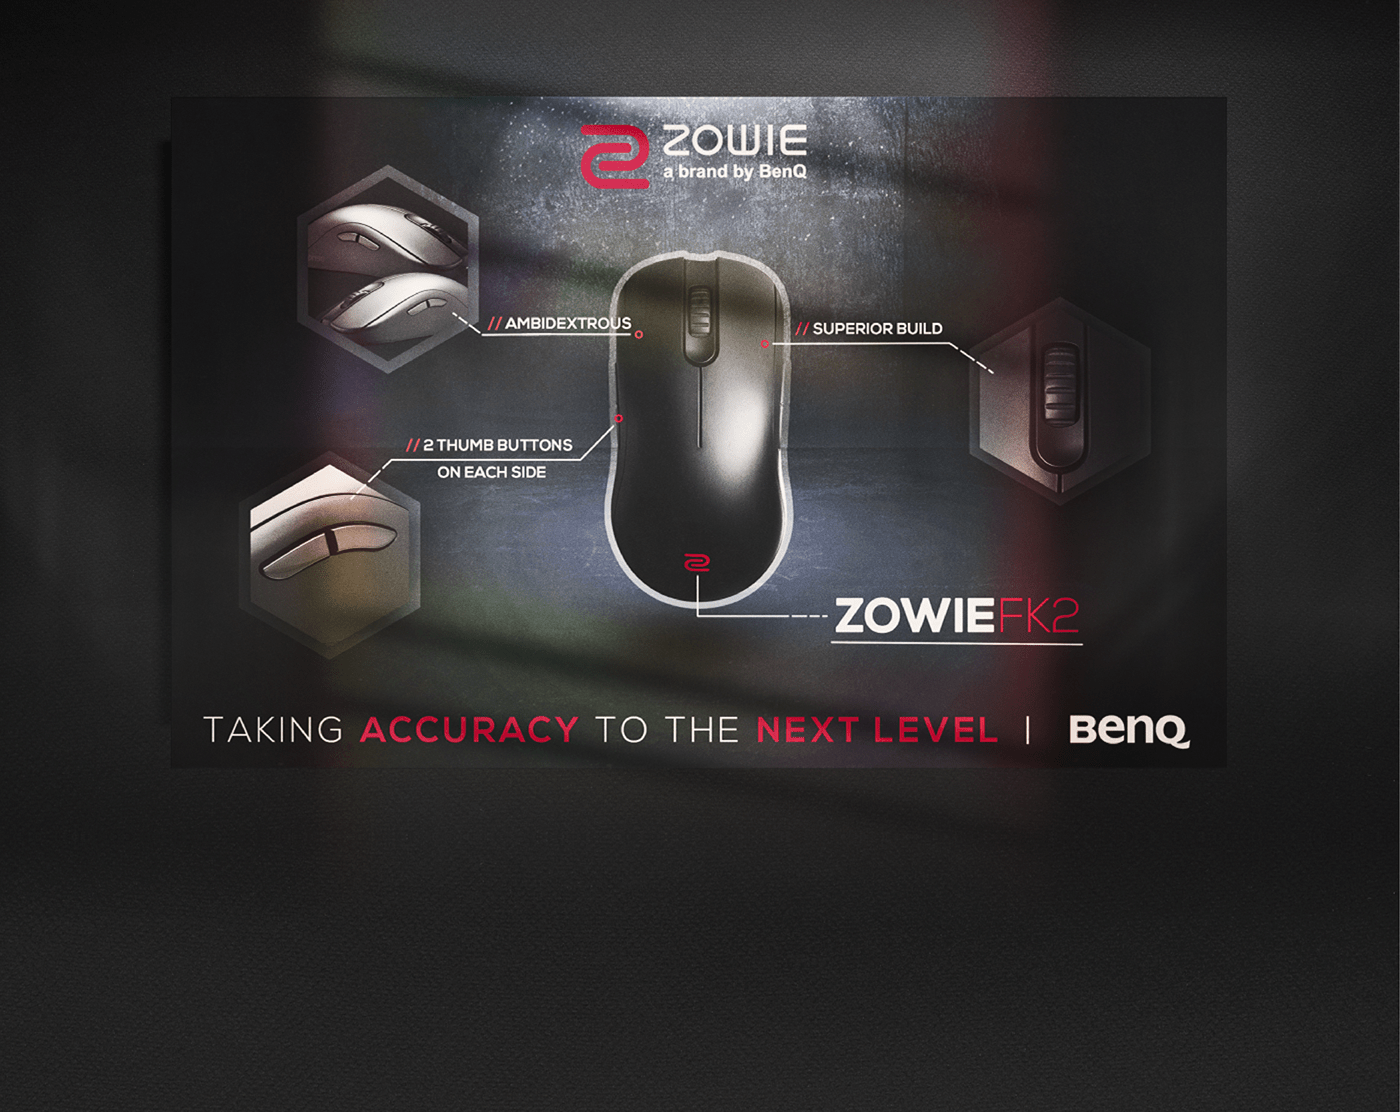 advertisement Advertising  Benq digital esports Gaming posters zowie